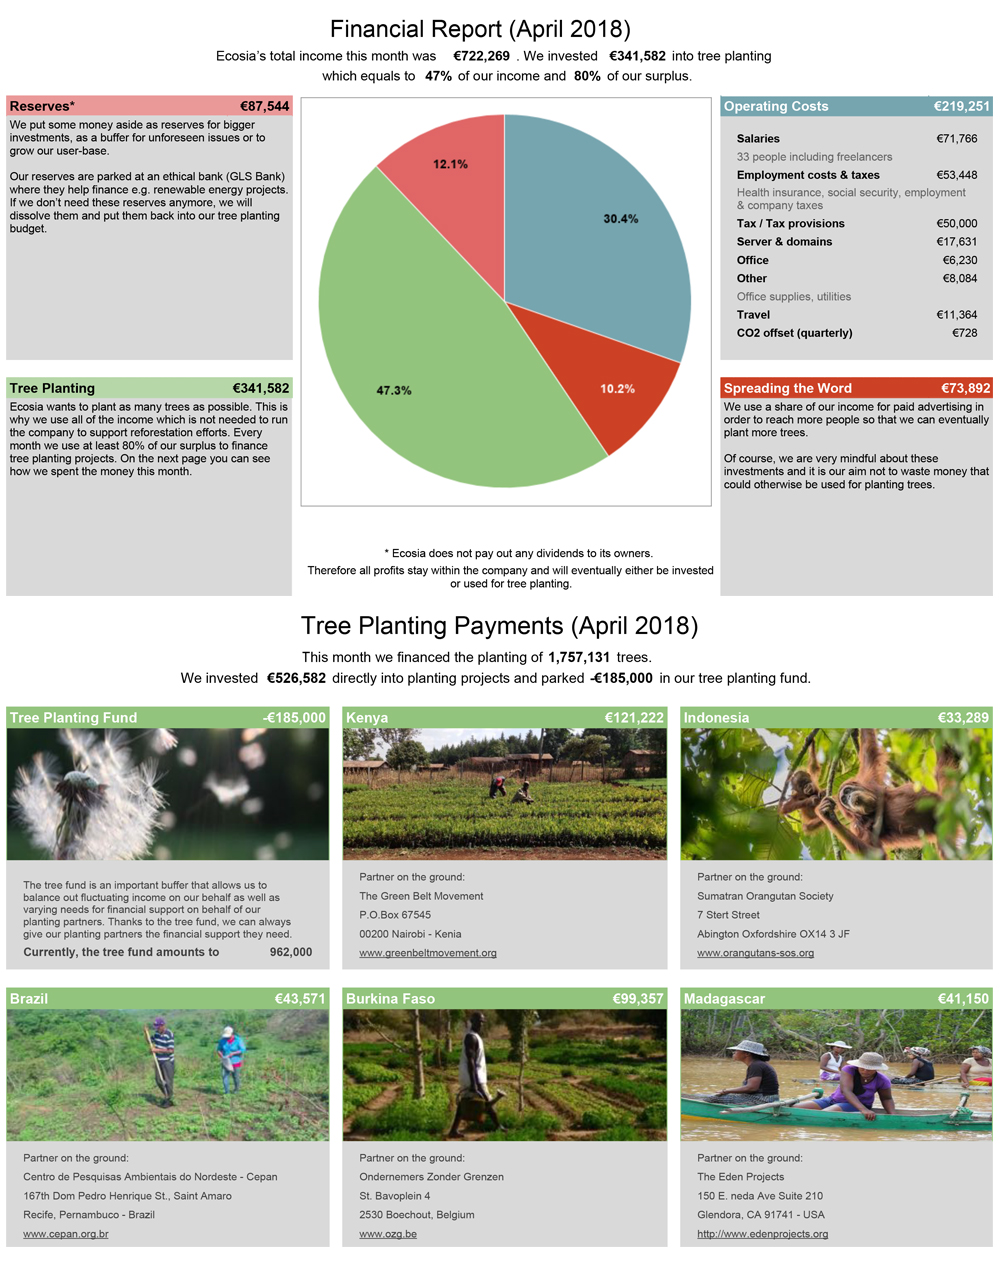 Ecosia's financial reports and tree-planting receipts